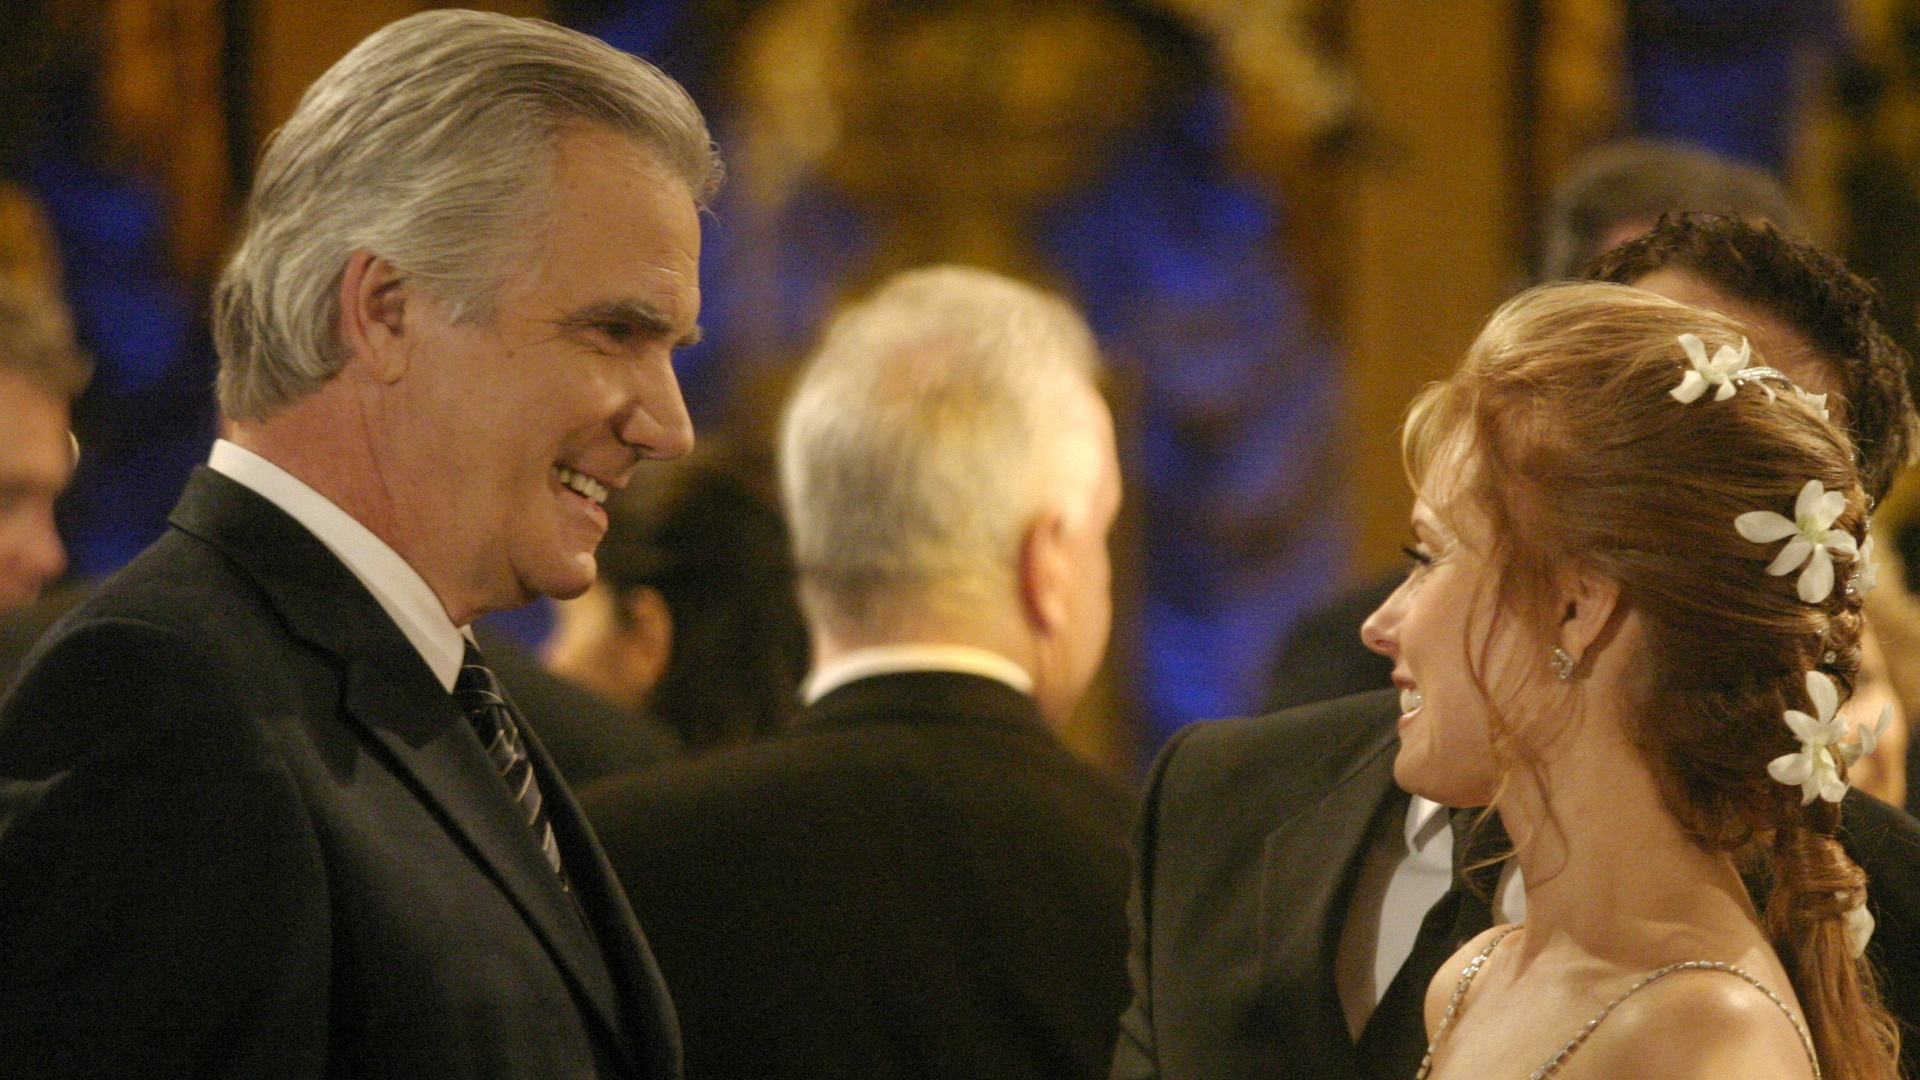 Eric Forrester (John McCook) visited Genoa City in 2005 for Lauren (Tracey Bregman) and Michael's (Christian LeBlanc) wedding.